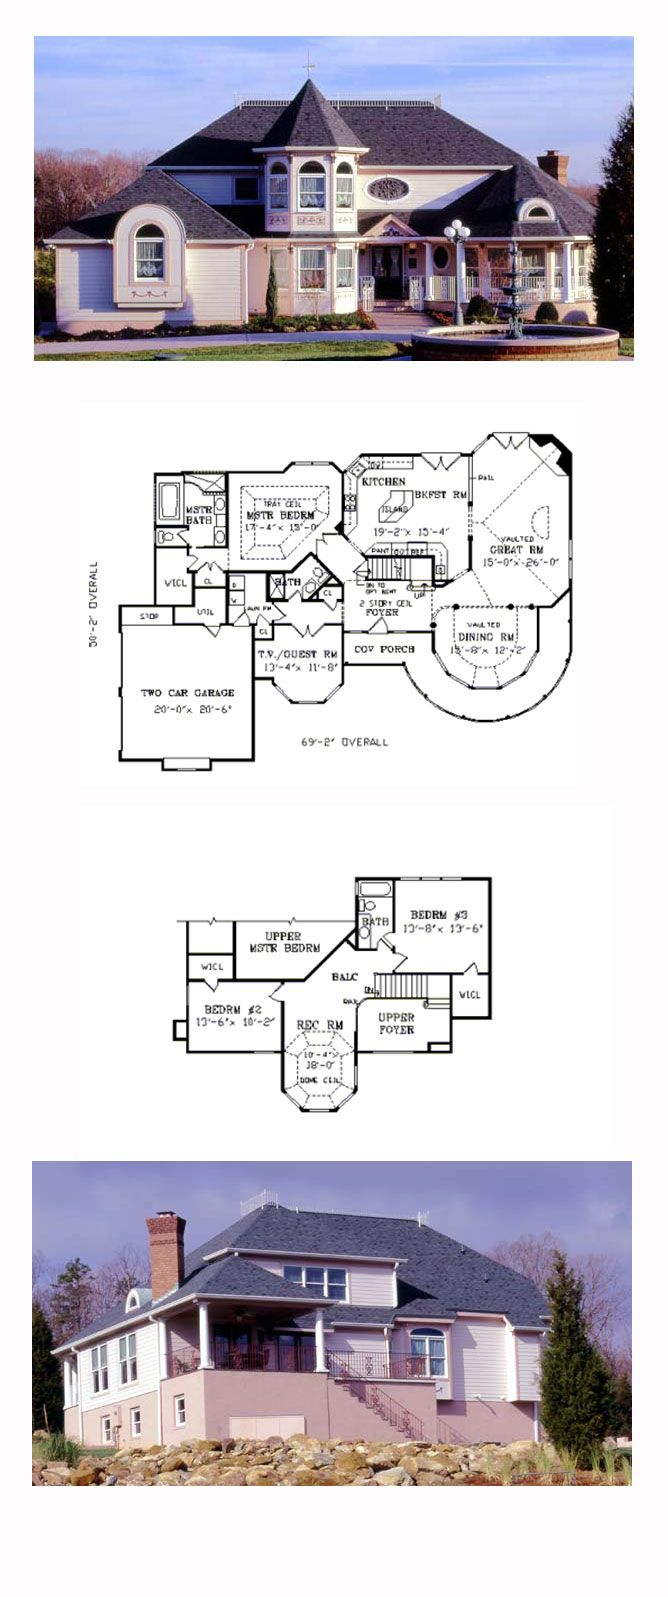 Tuscan House Plan 69511 | Total Living Area: 2696 sq. ft., 4 bedrooms and 2.5 bathrooms. Copyright by designer. #victorianhome